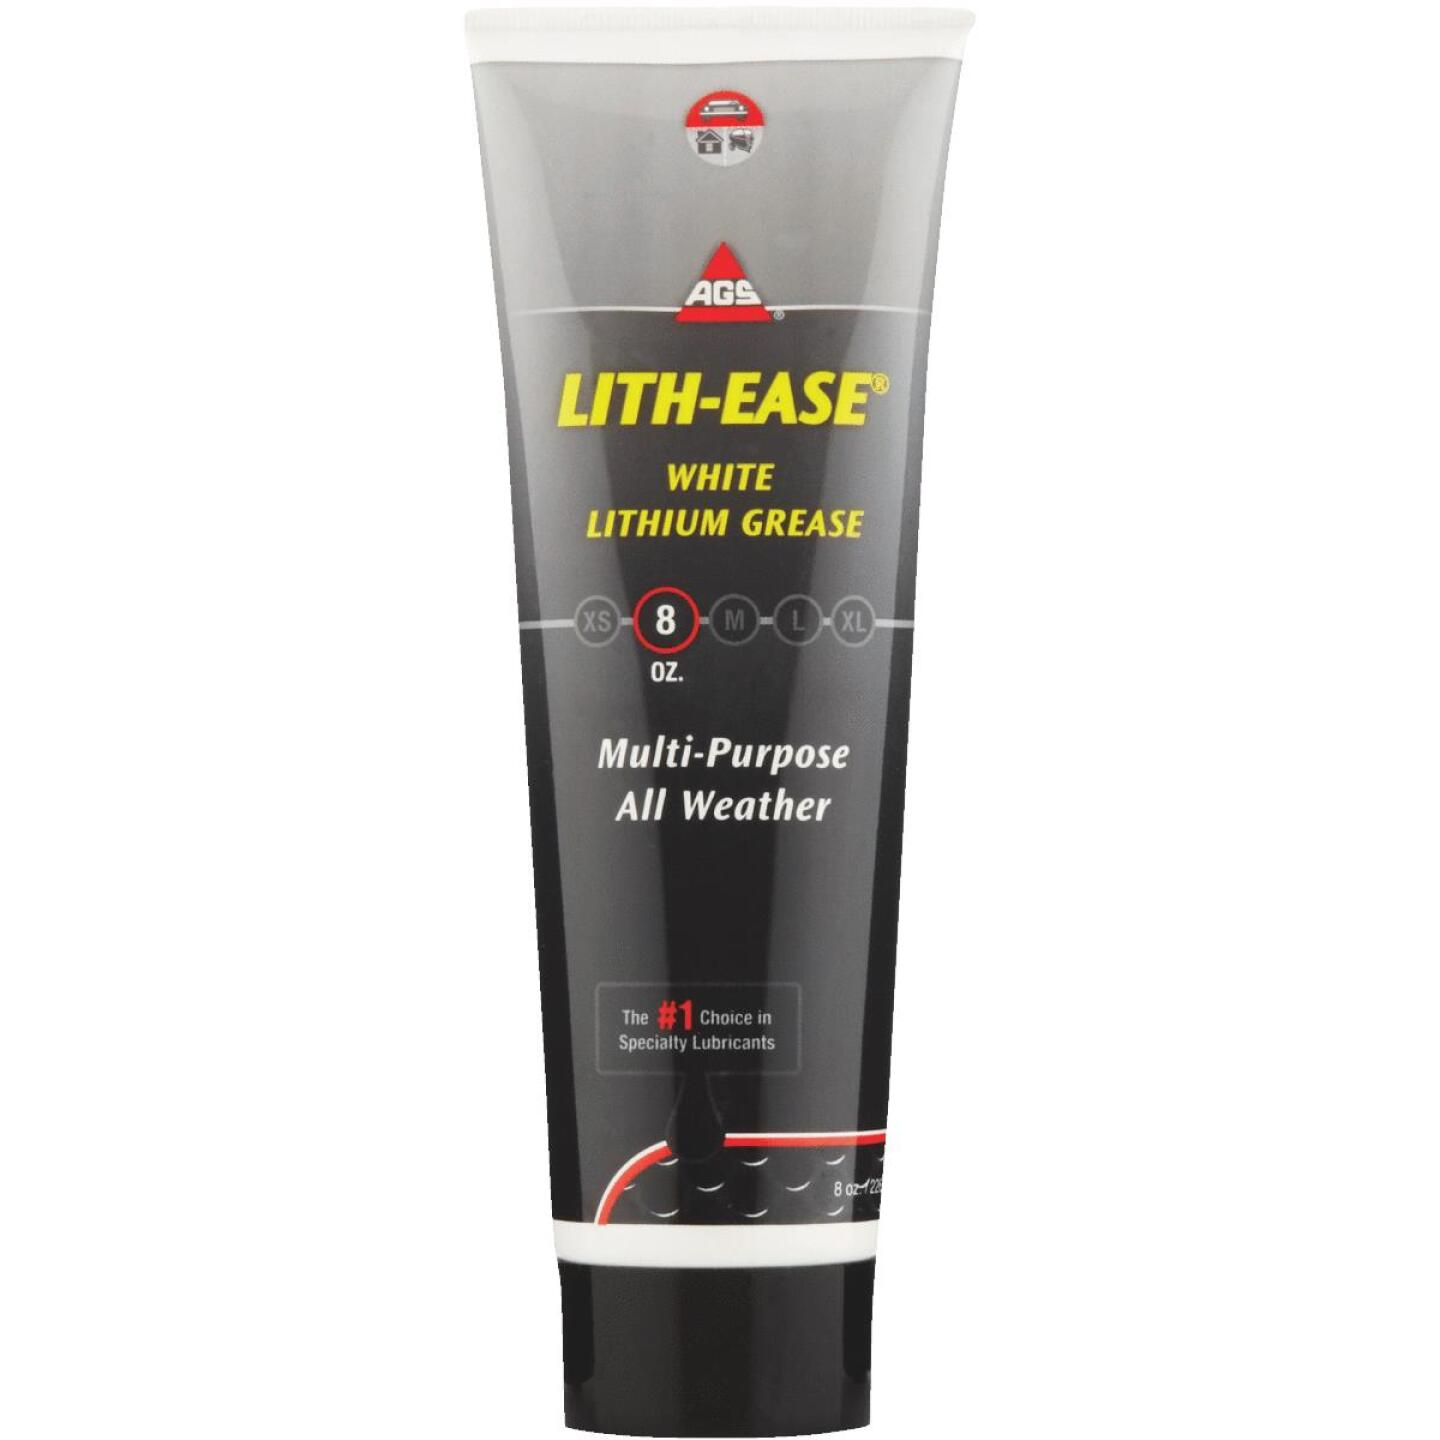 AGS Lith-Ease 8 Oz. Tube White Lithium Grease Image 1